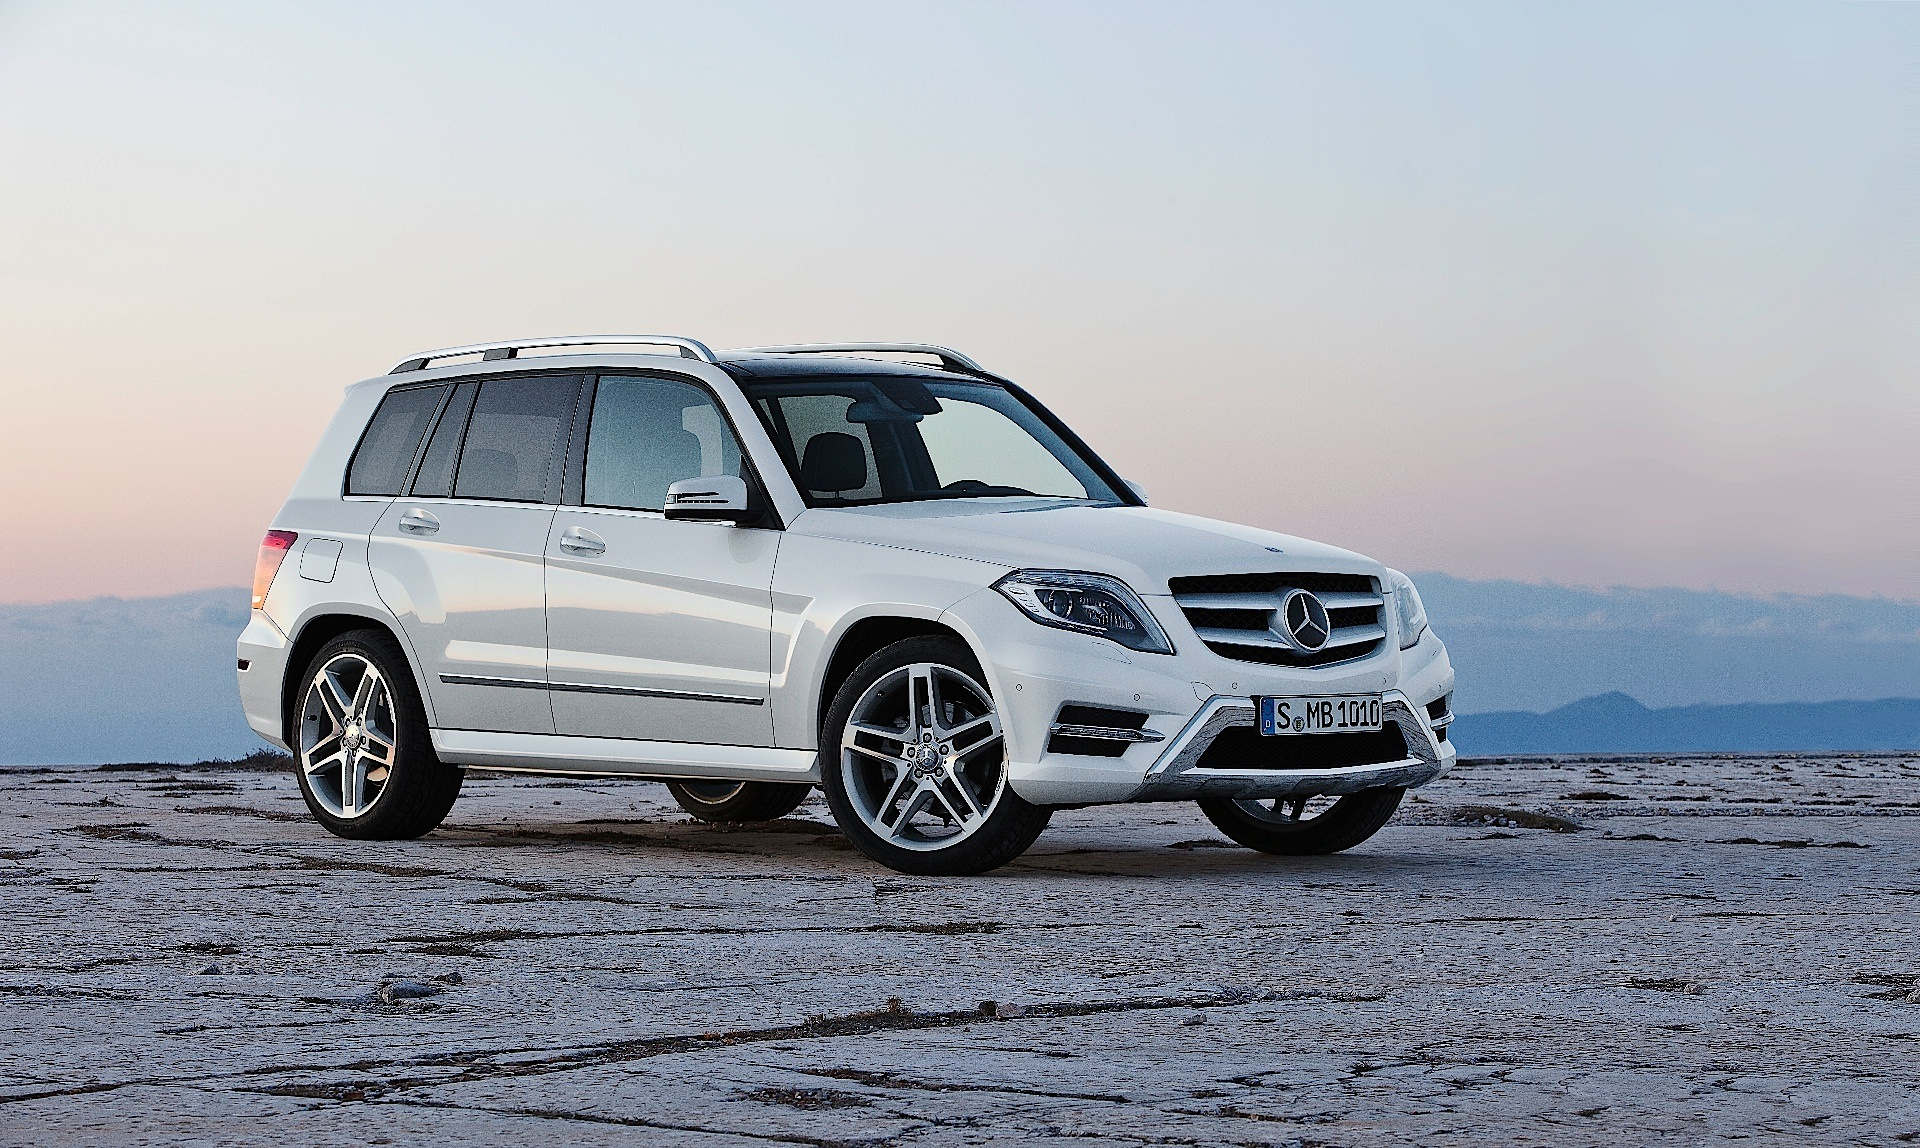 2008 mercedes glk 350 reviews for Mercedes benz glk 350 review